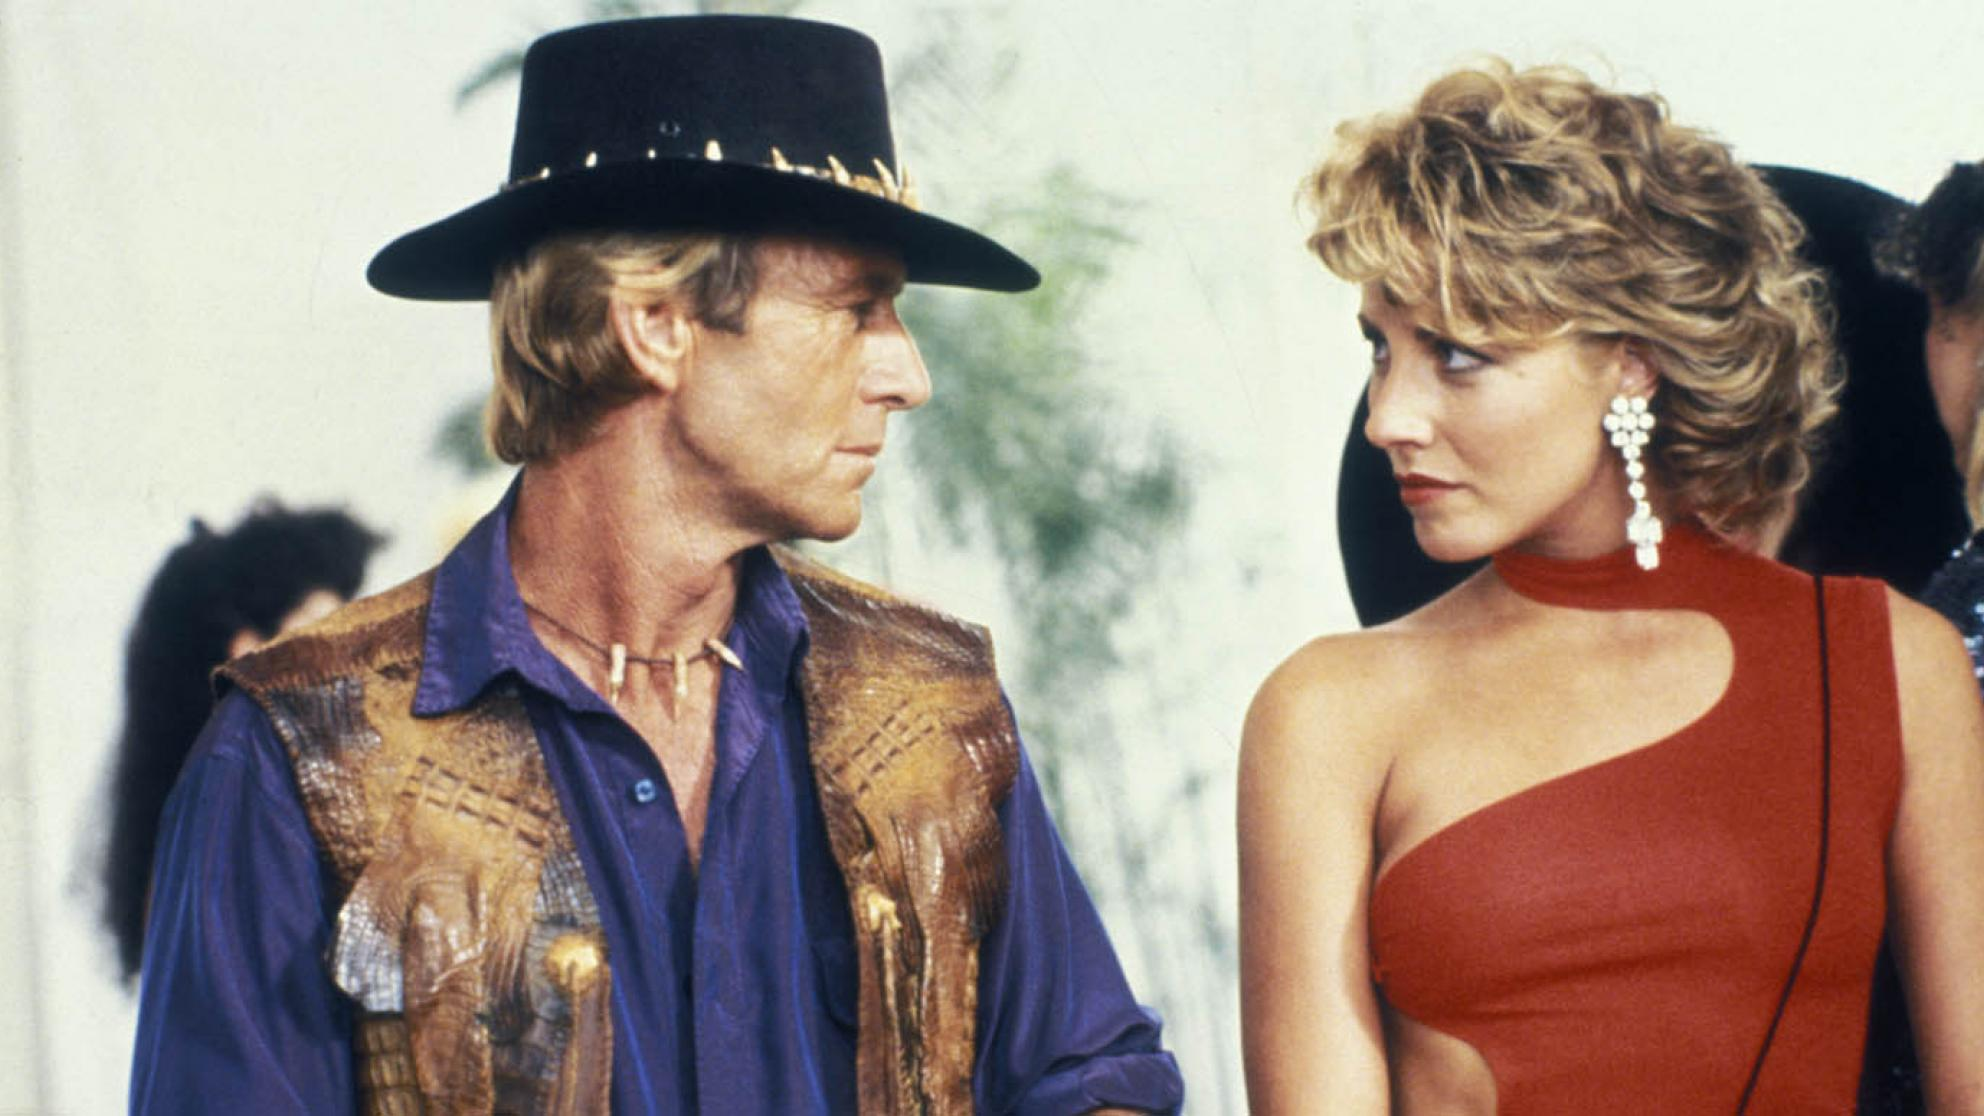 Paul Hogan looks at Linda Kozlowski in a still from the film Crocodile Dundee